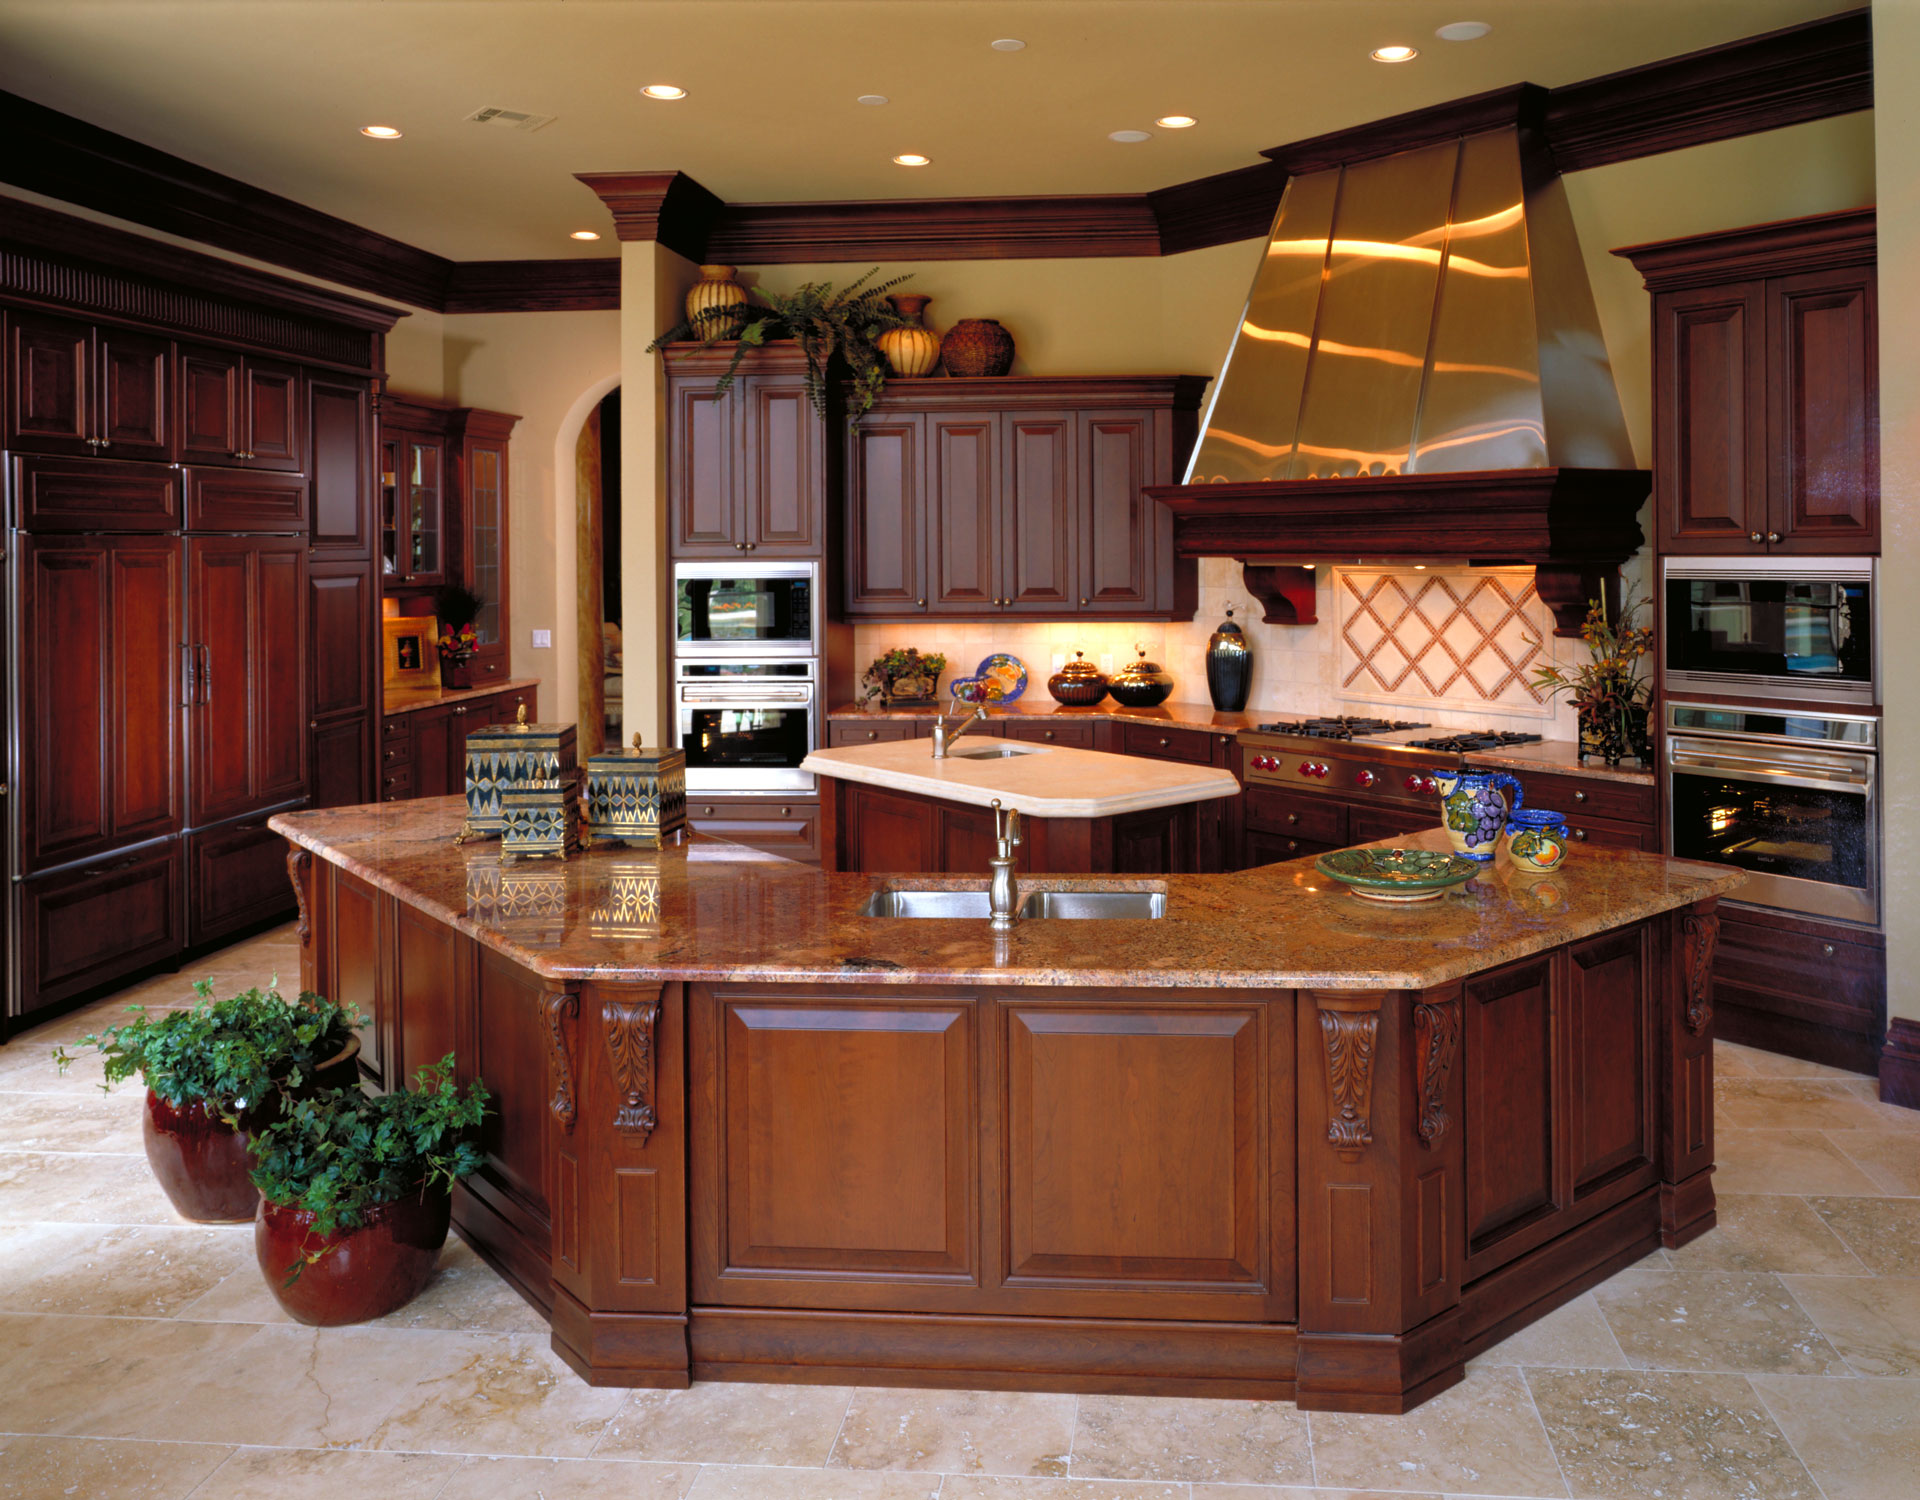 Cuttwood Construction Co. Custom Wood Cabinets, Custom Kitchen Cabinets and Custom Cabinets